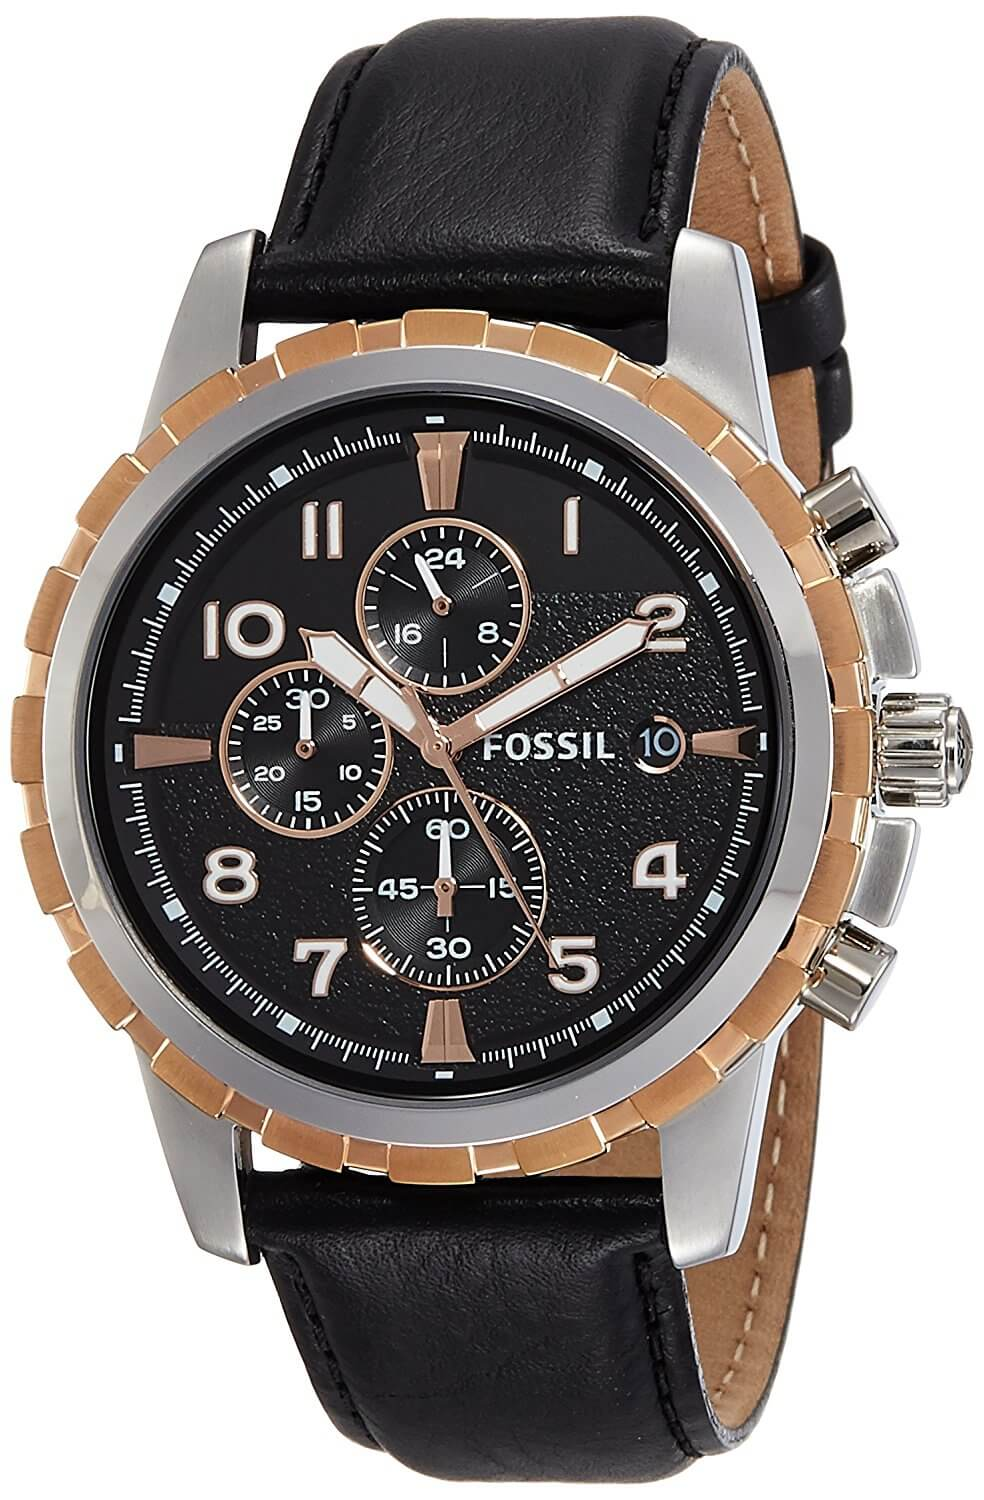 Fossil End of Season Chronograph Black Dial Men's Watch – FS4545